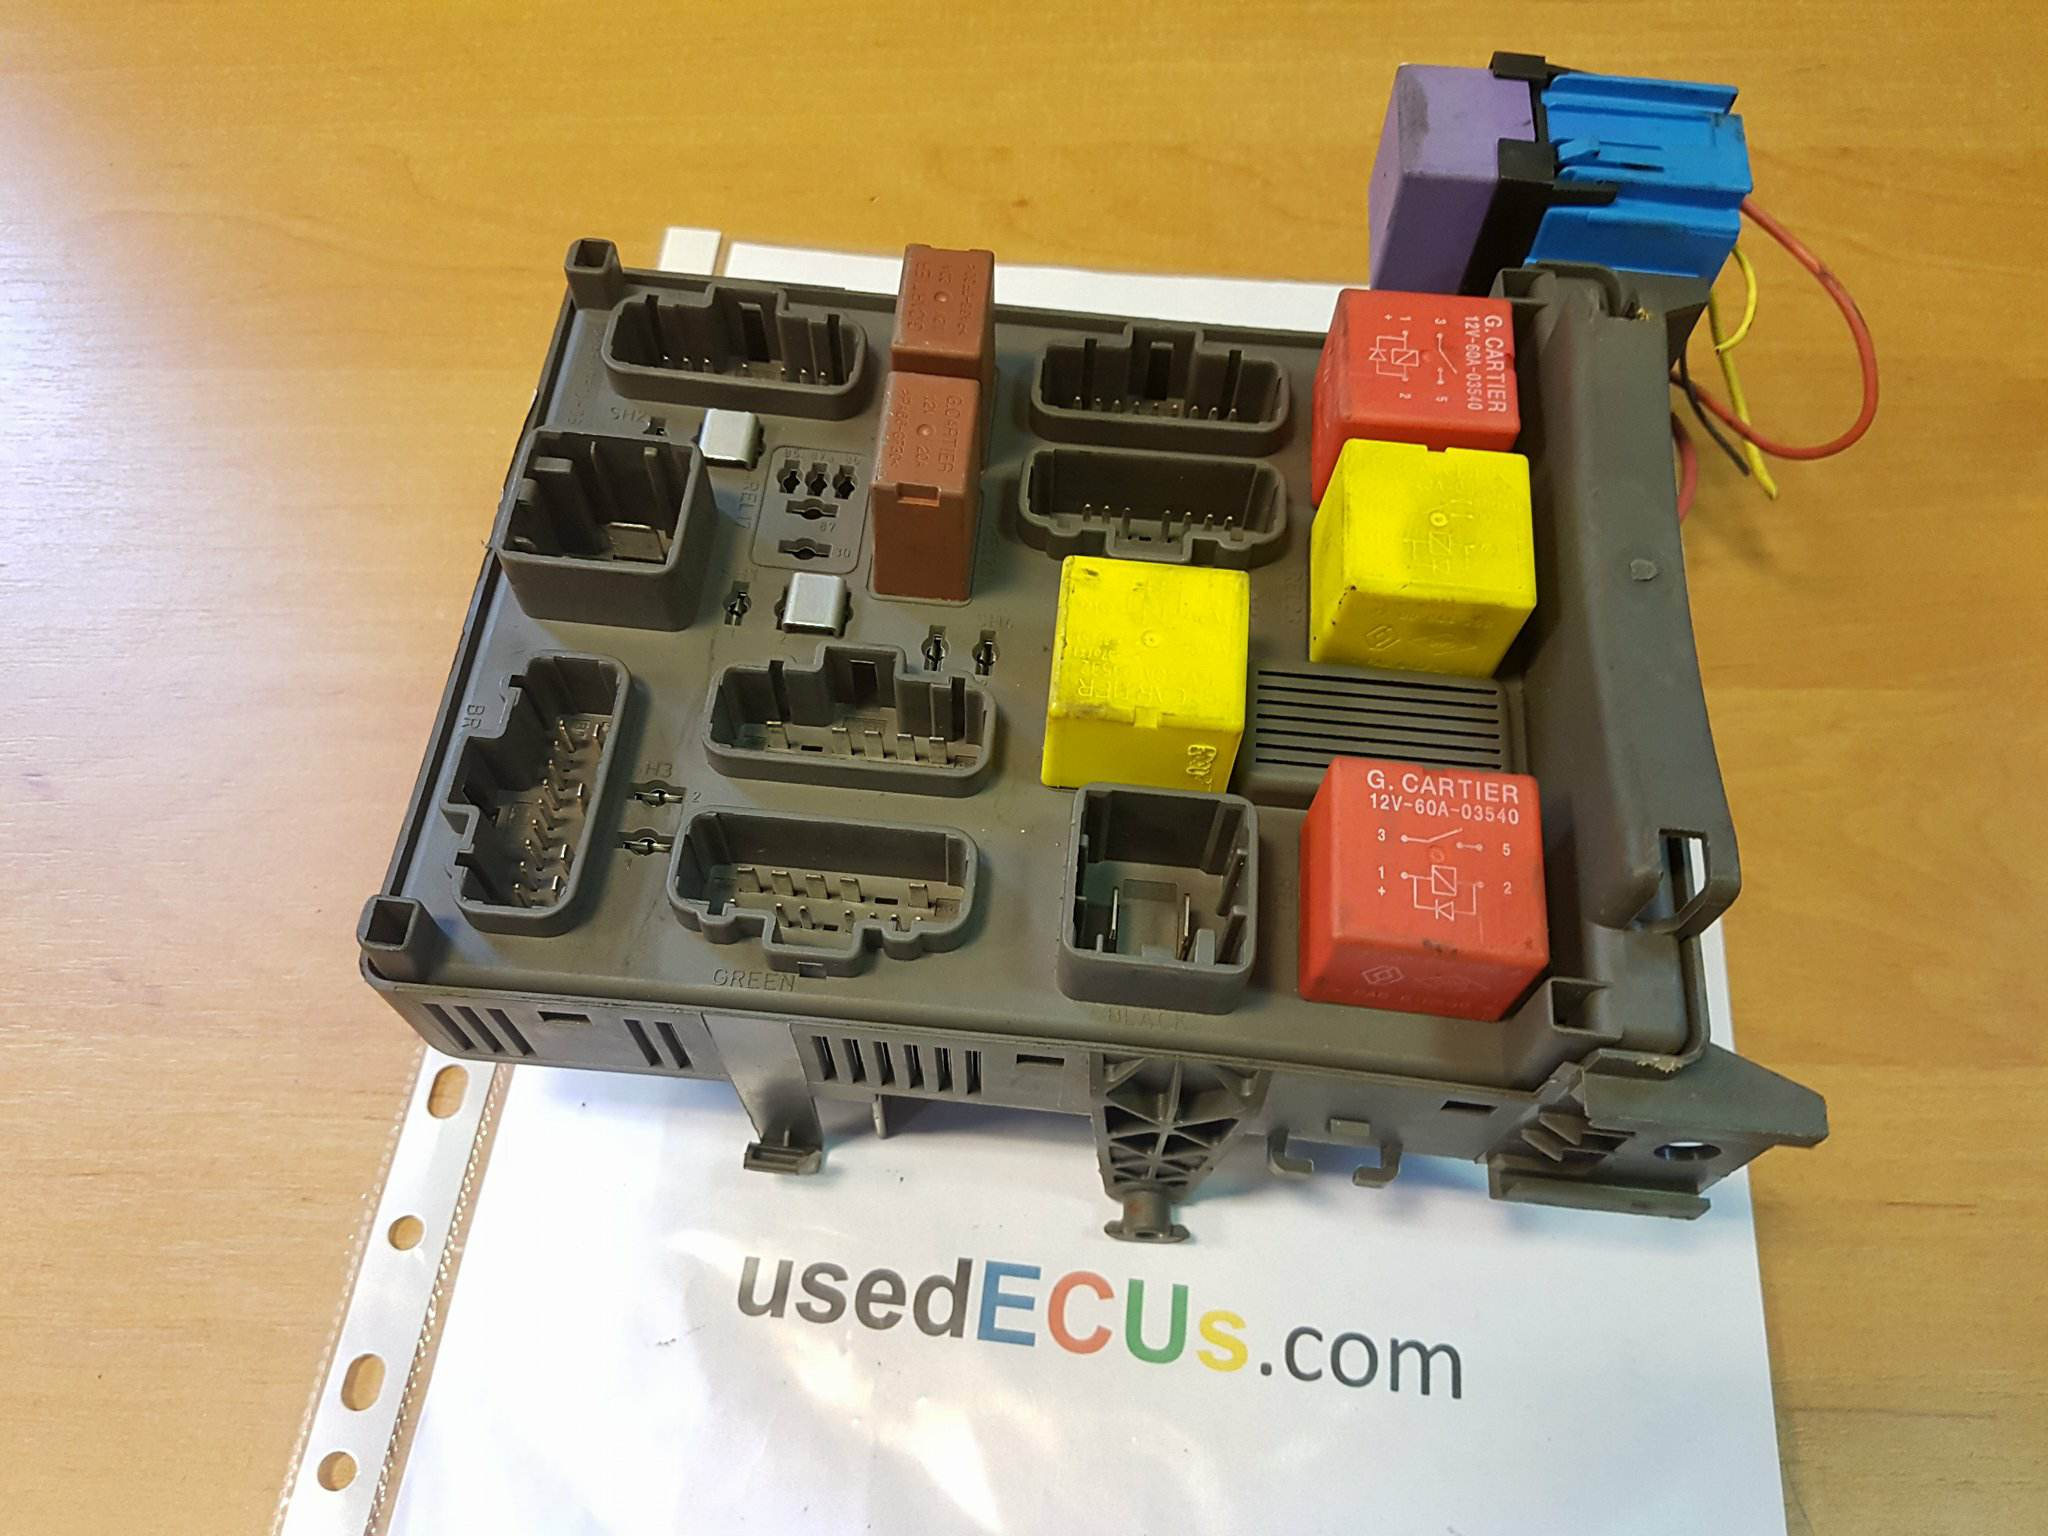 Audi A3 Interior Fuse Box Free Download Wiring Diagram 8p Renault Laguna Espace 19 Dci 8200004201e Also With Infiniti